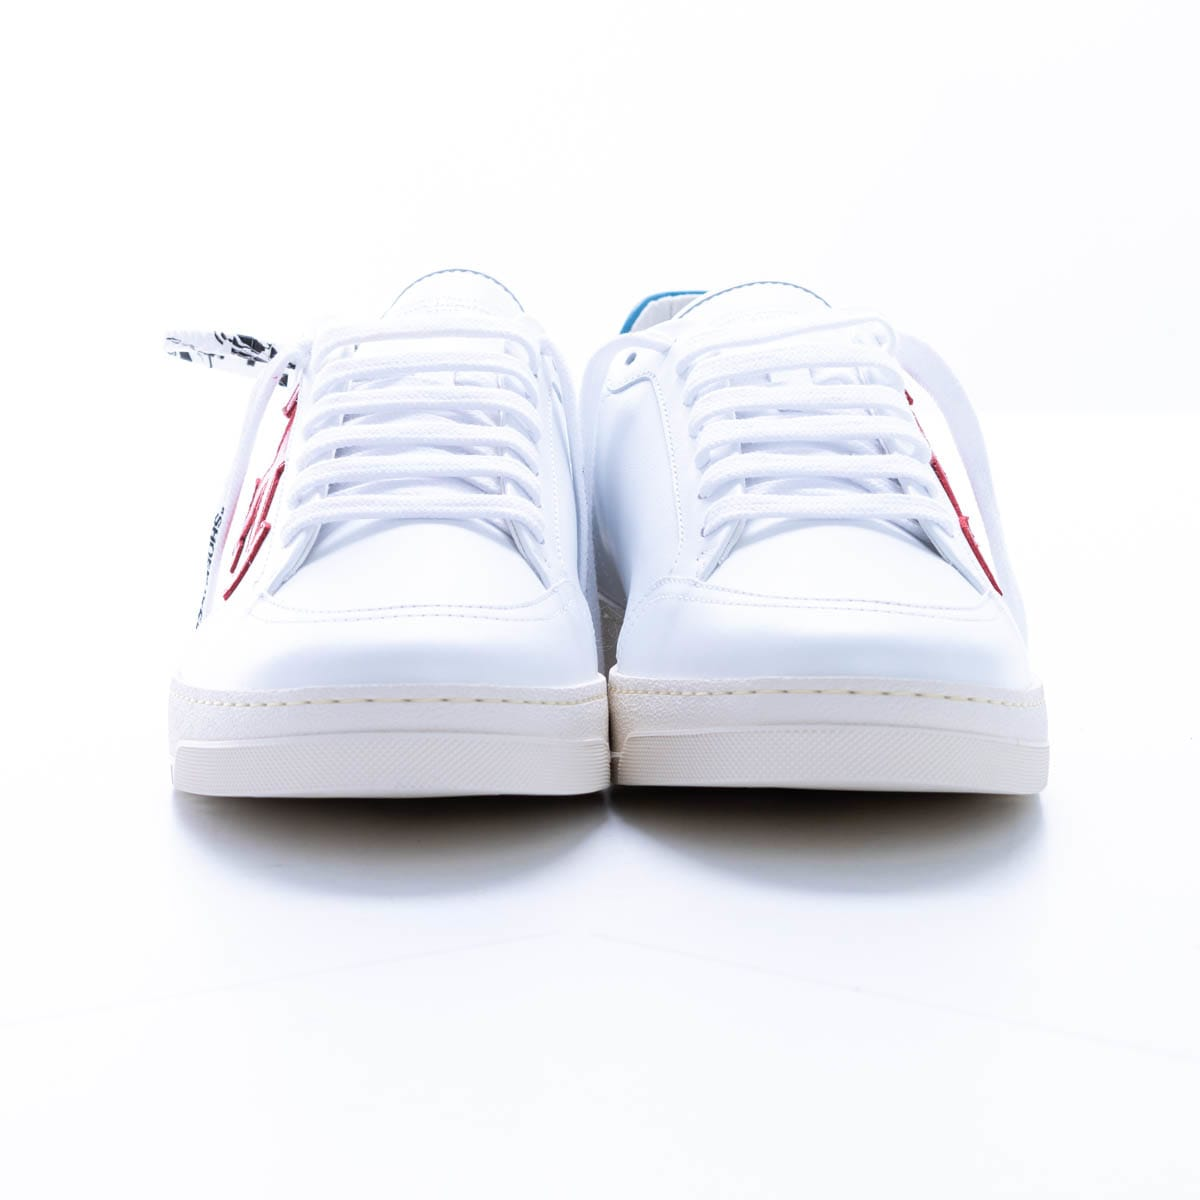 Off-white 2.0 Leather Sneaker In White - Red